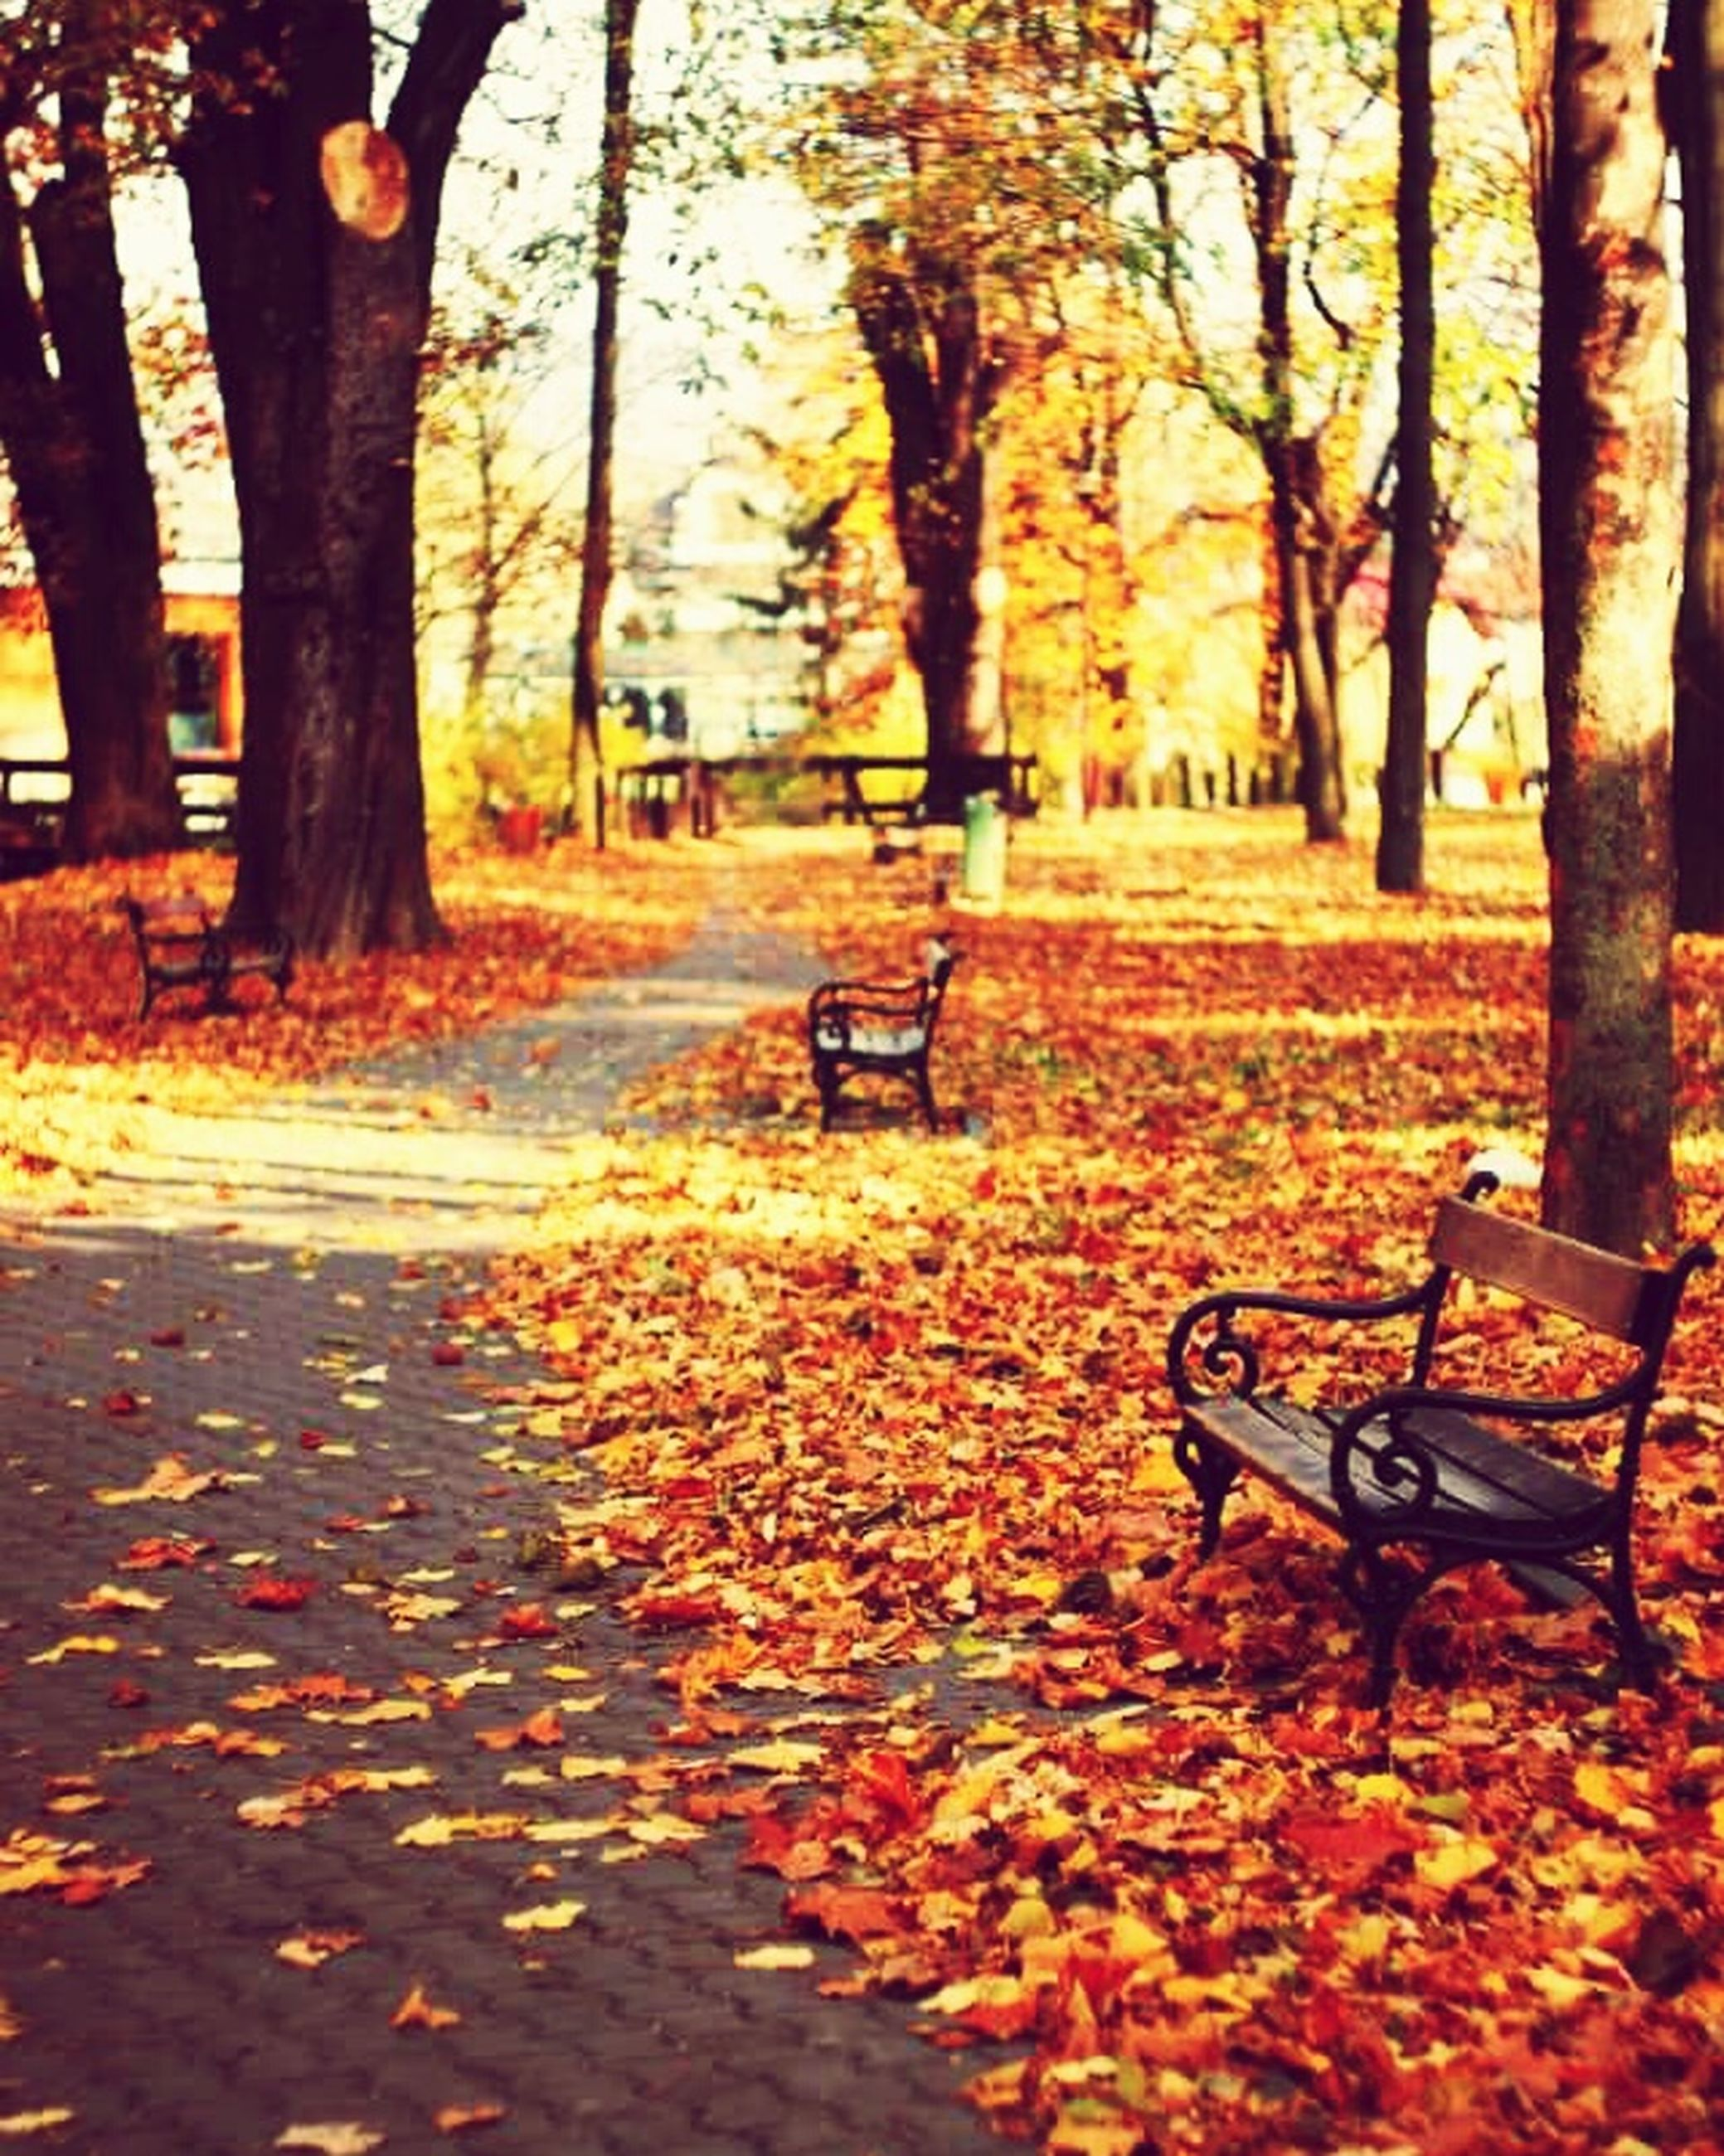 tree, autumn, change, leaf, season, tree trunk, the way forward, fallen, transportation, bench, tranquility, orange color, nature, footpath, leaves, empty, park - man made space, sunlight, absence, park bench